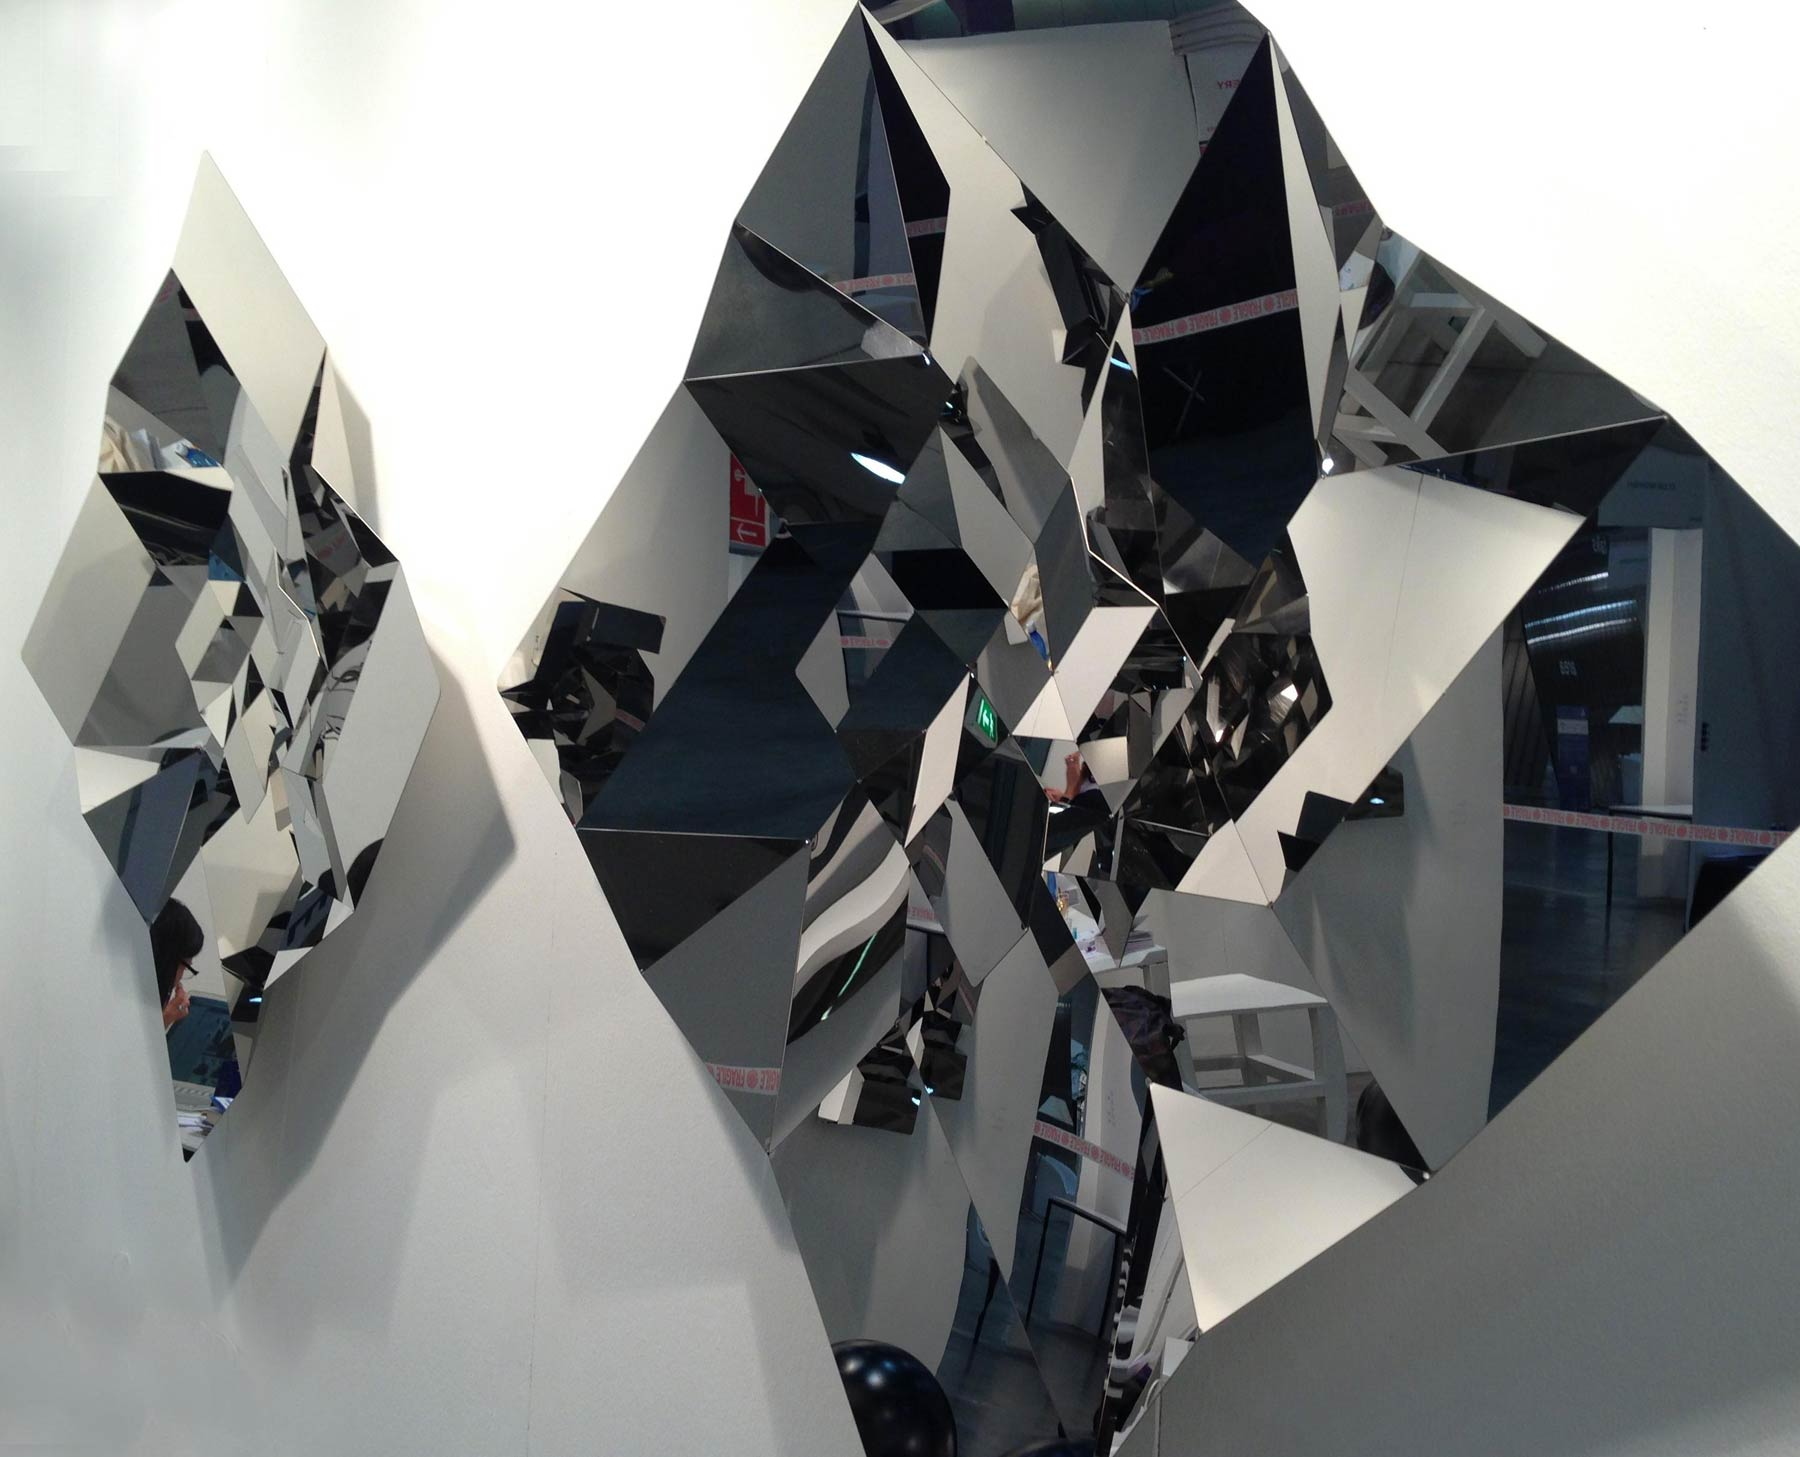 Picture of folded metallic panes placed on a wall.